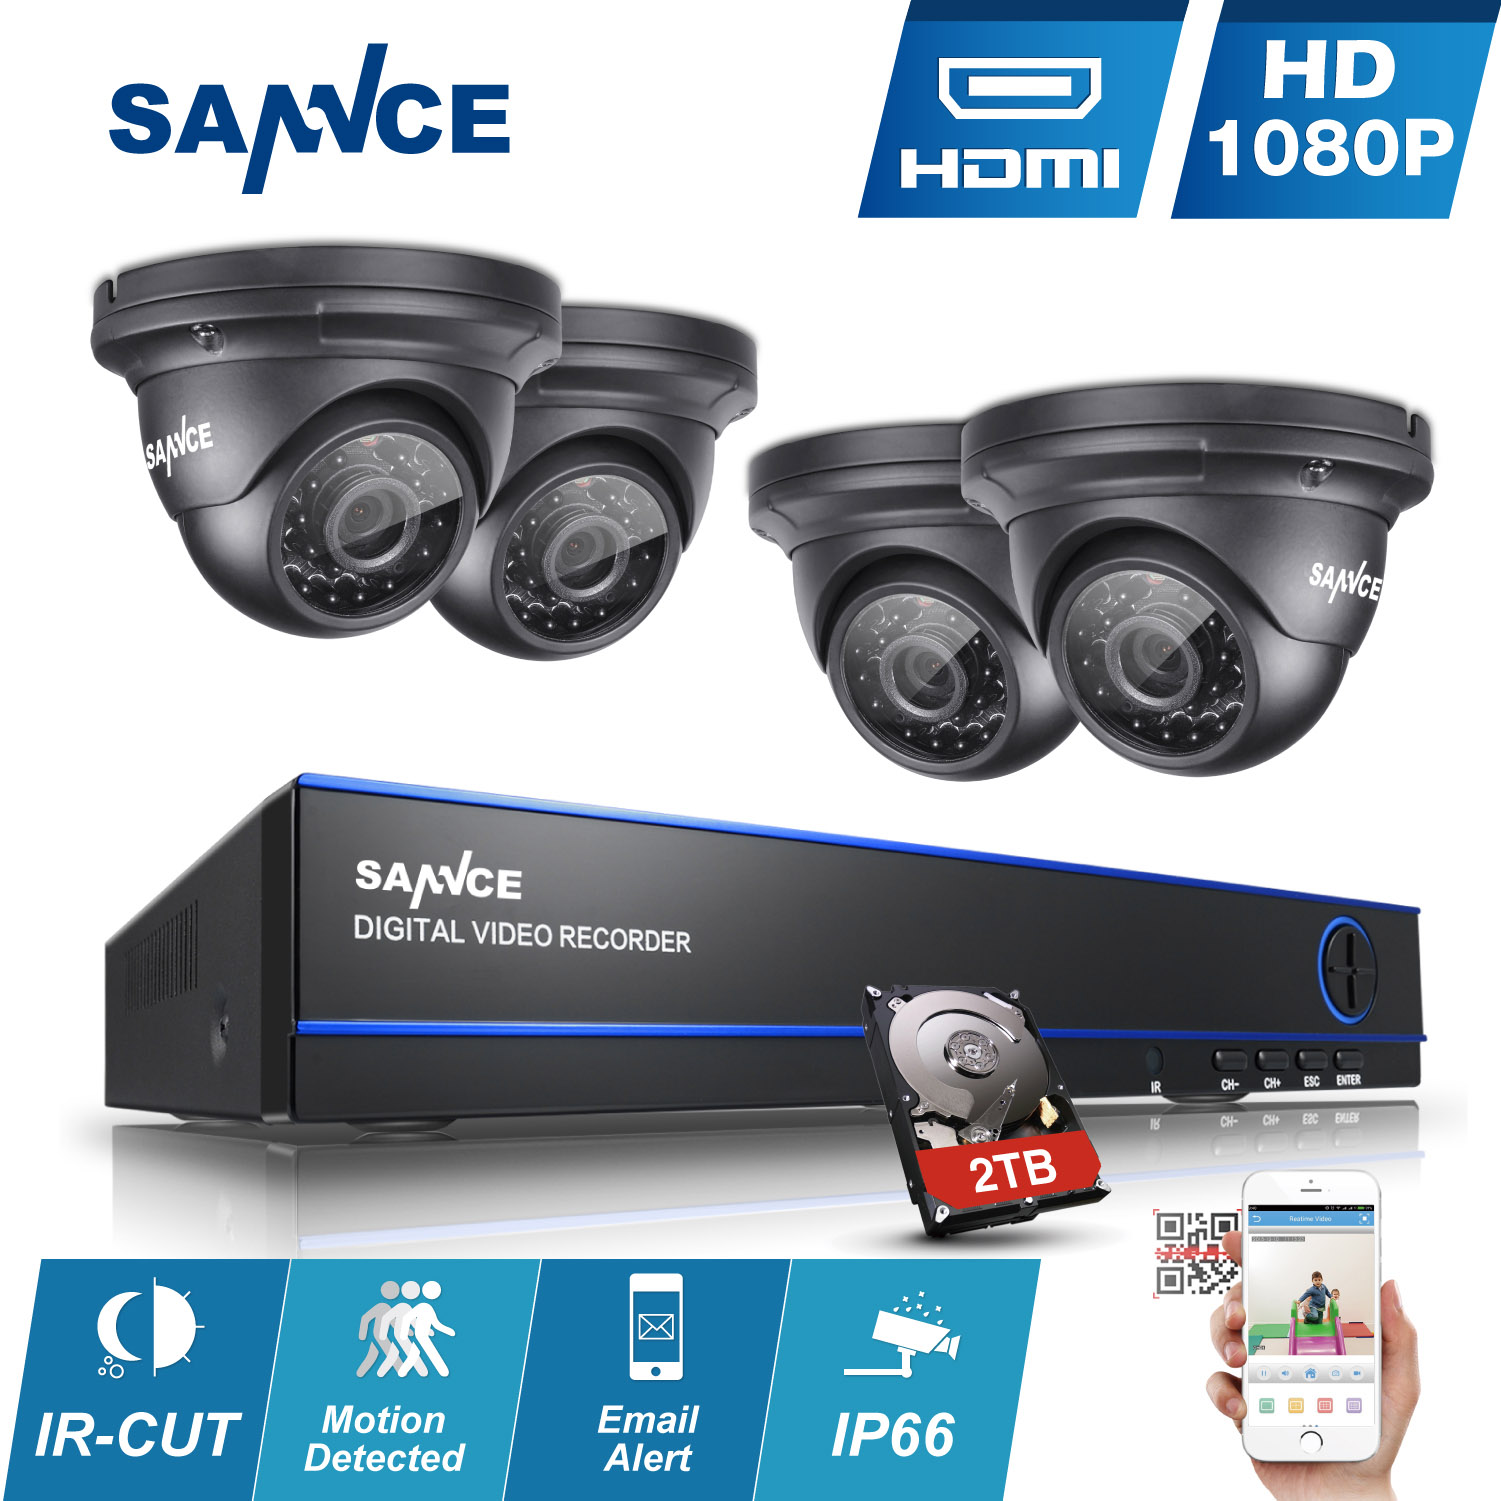 2016 SANNCE 2MP 1080P HD 8 Channel DVR AHD Surveillance Kit 4PCS 3000TVL Outdoor Home Security Camera CCTV System(0-NO HDD,1-1TB HDD,2-2TB HDD)